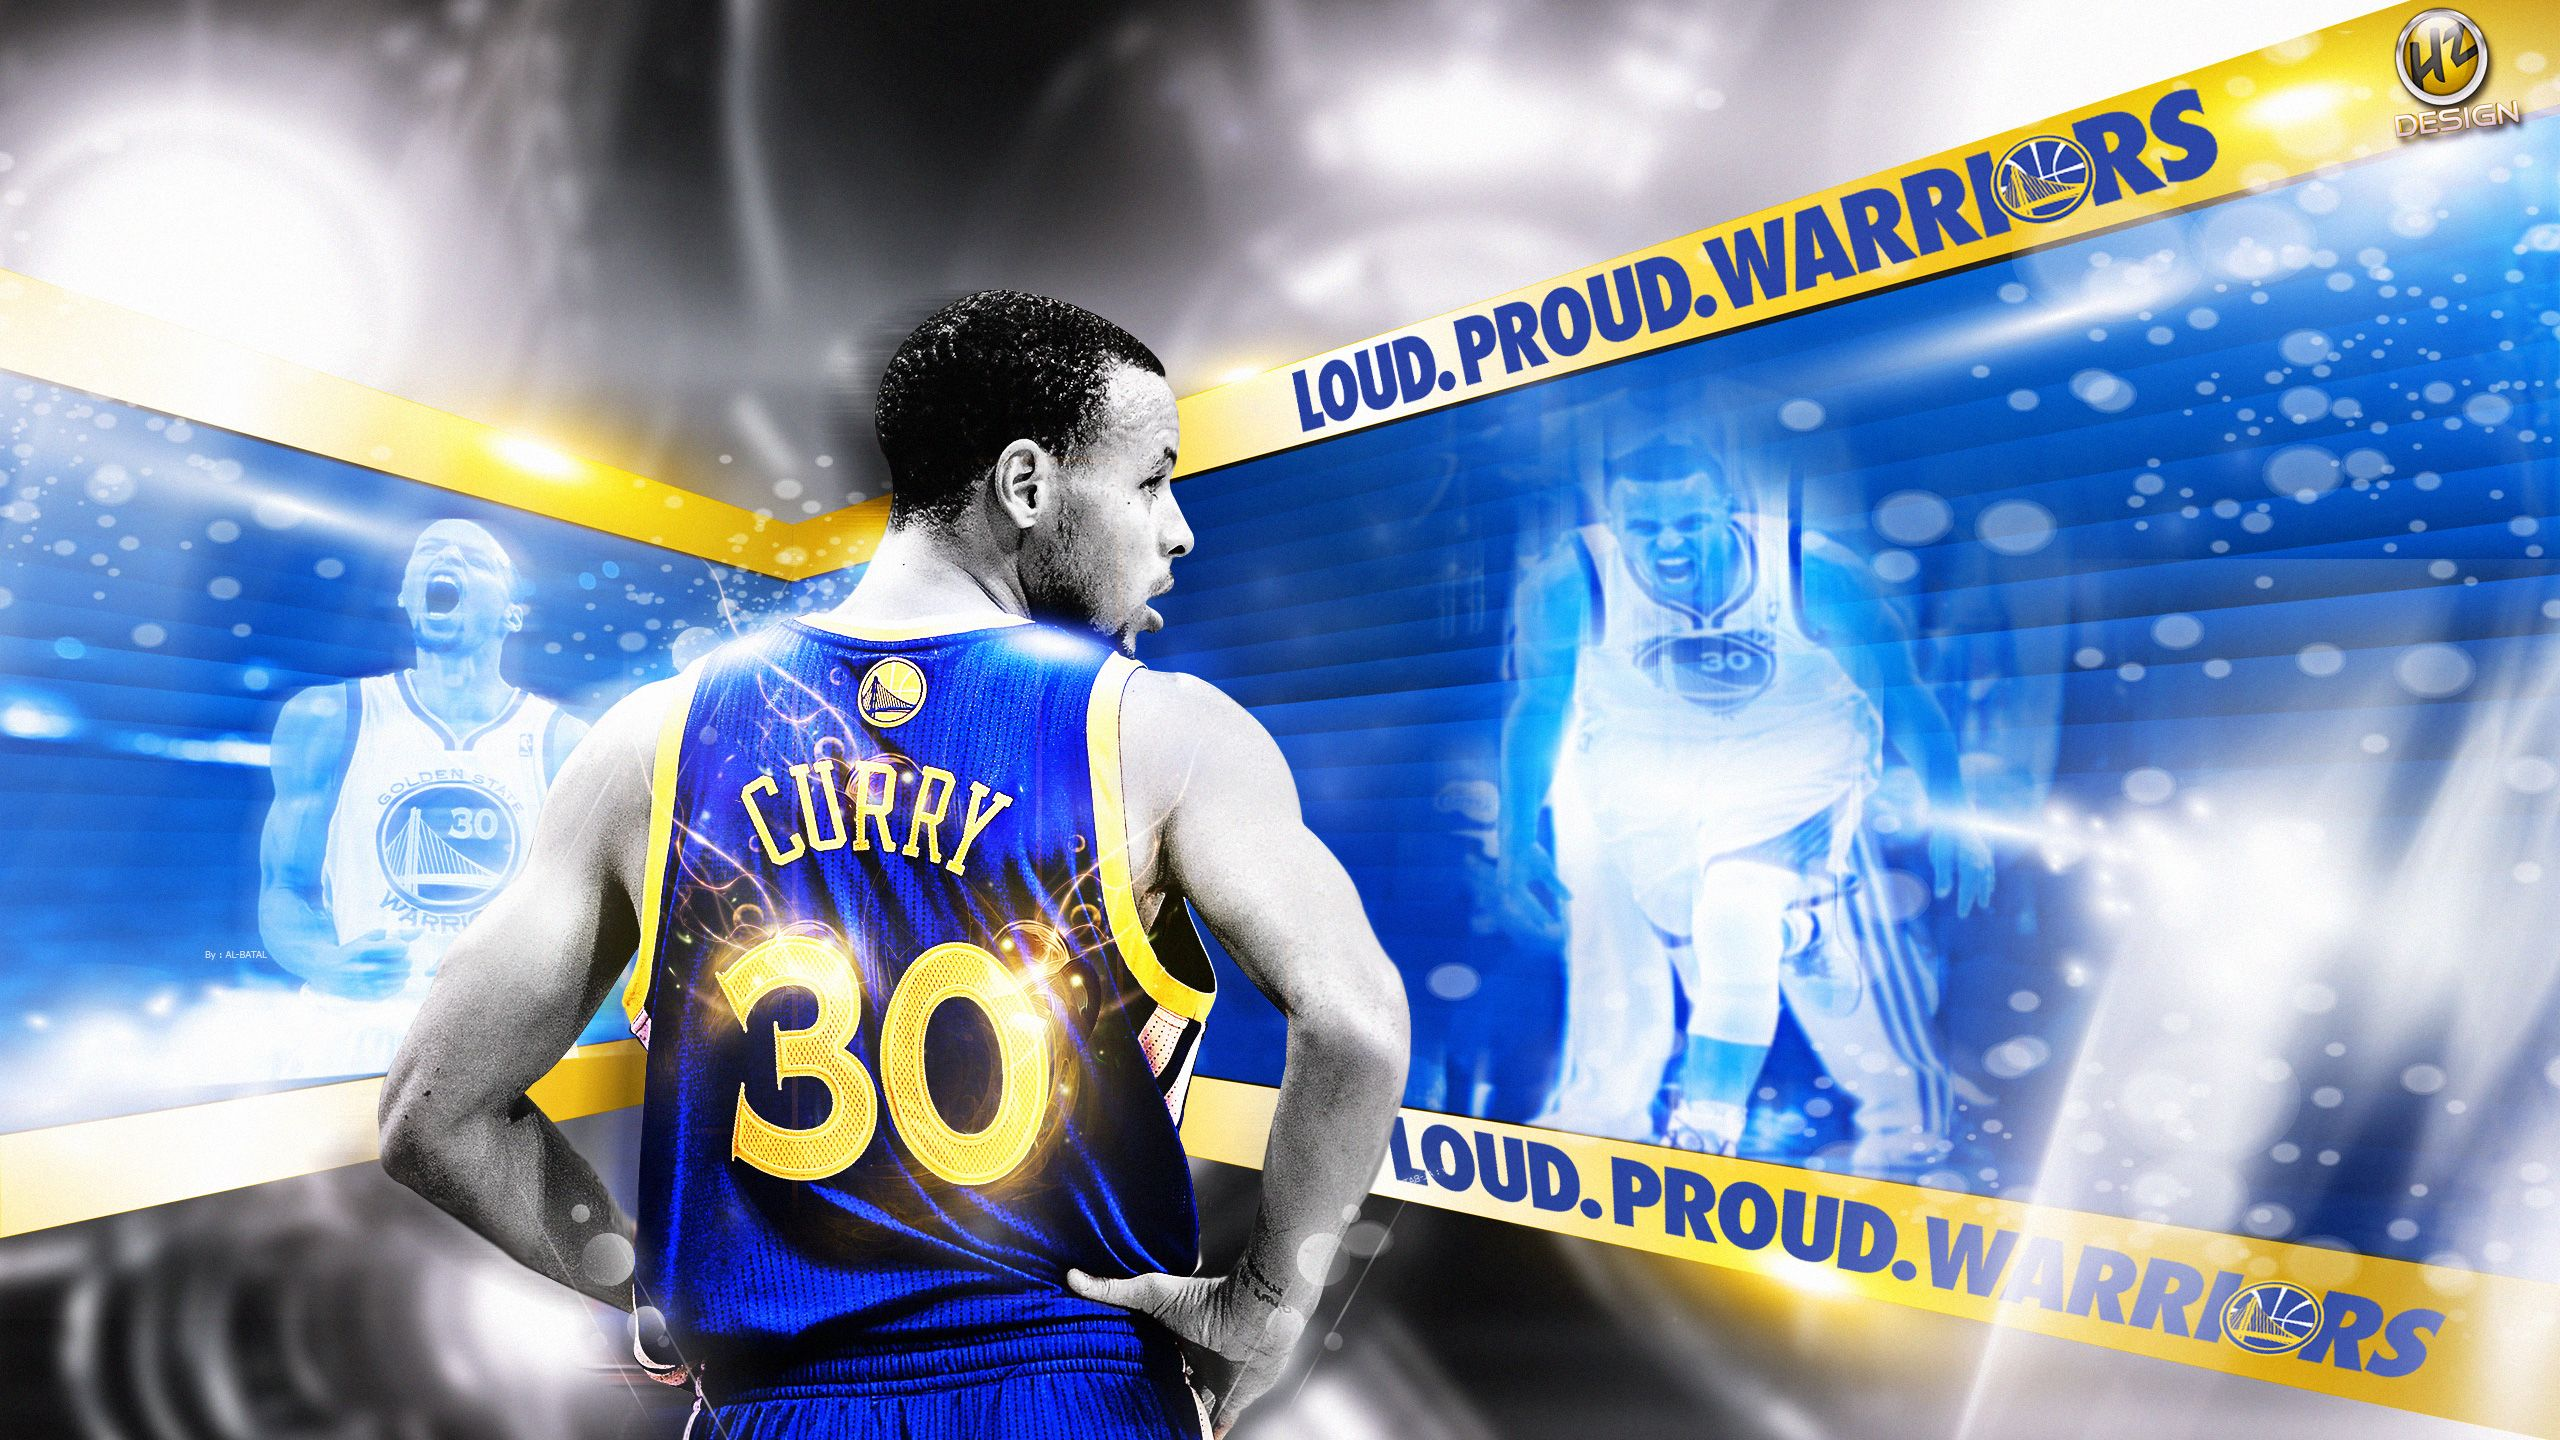 Download Free Stephen Curry Background Wallpaper